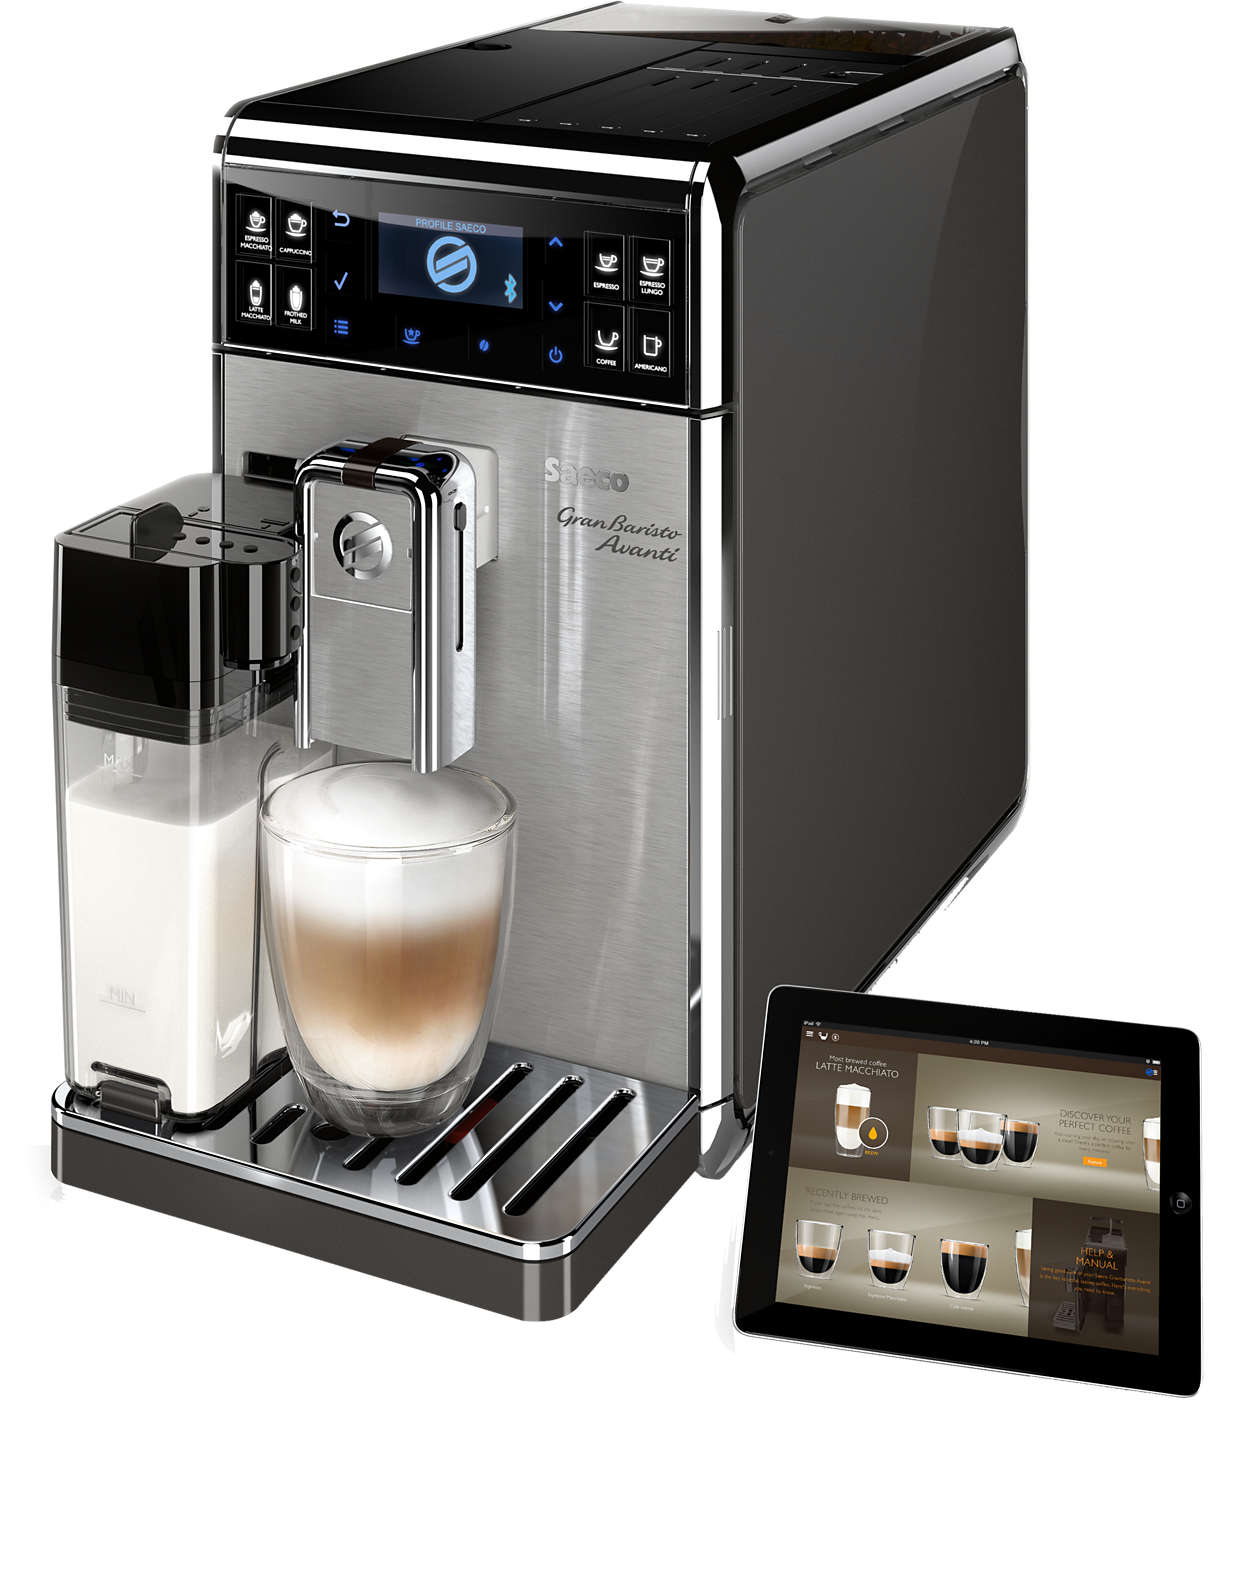 The most advanced at-home coffee experience